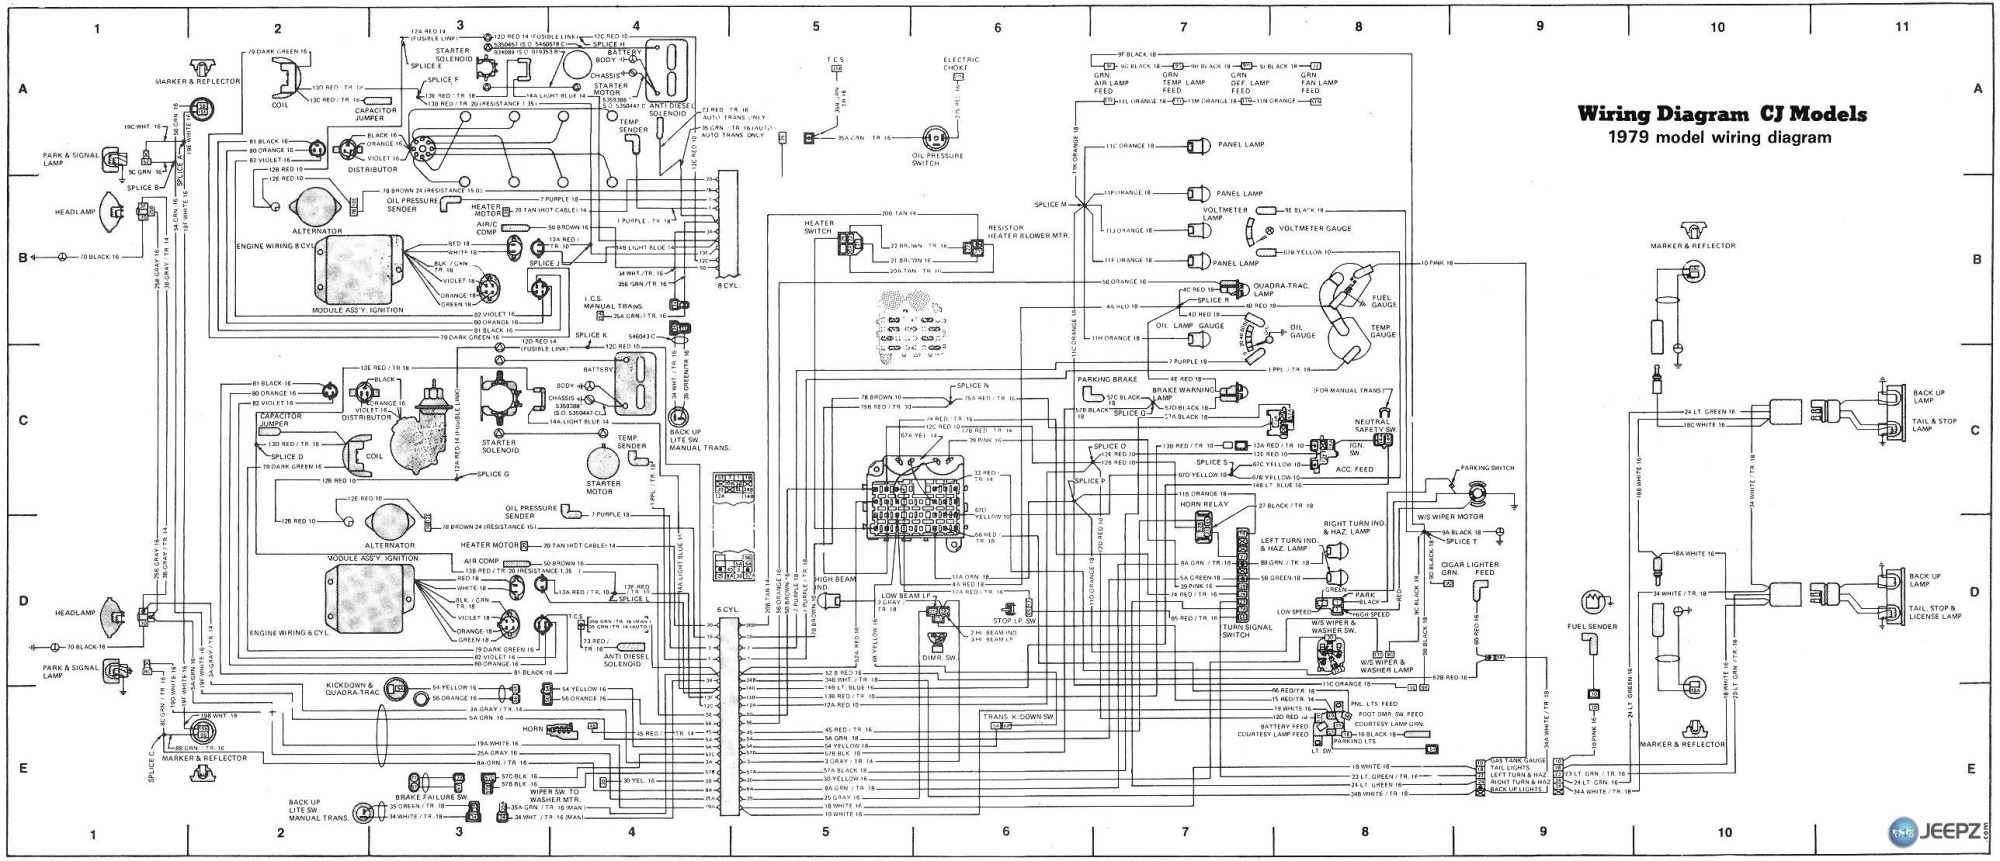 hight resolution of 85 cj7 wiring diagram wiring diagrams konsult 1979 jeep cj7 wiring diagram wiring diagram world 85